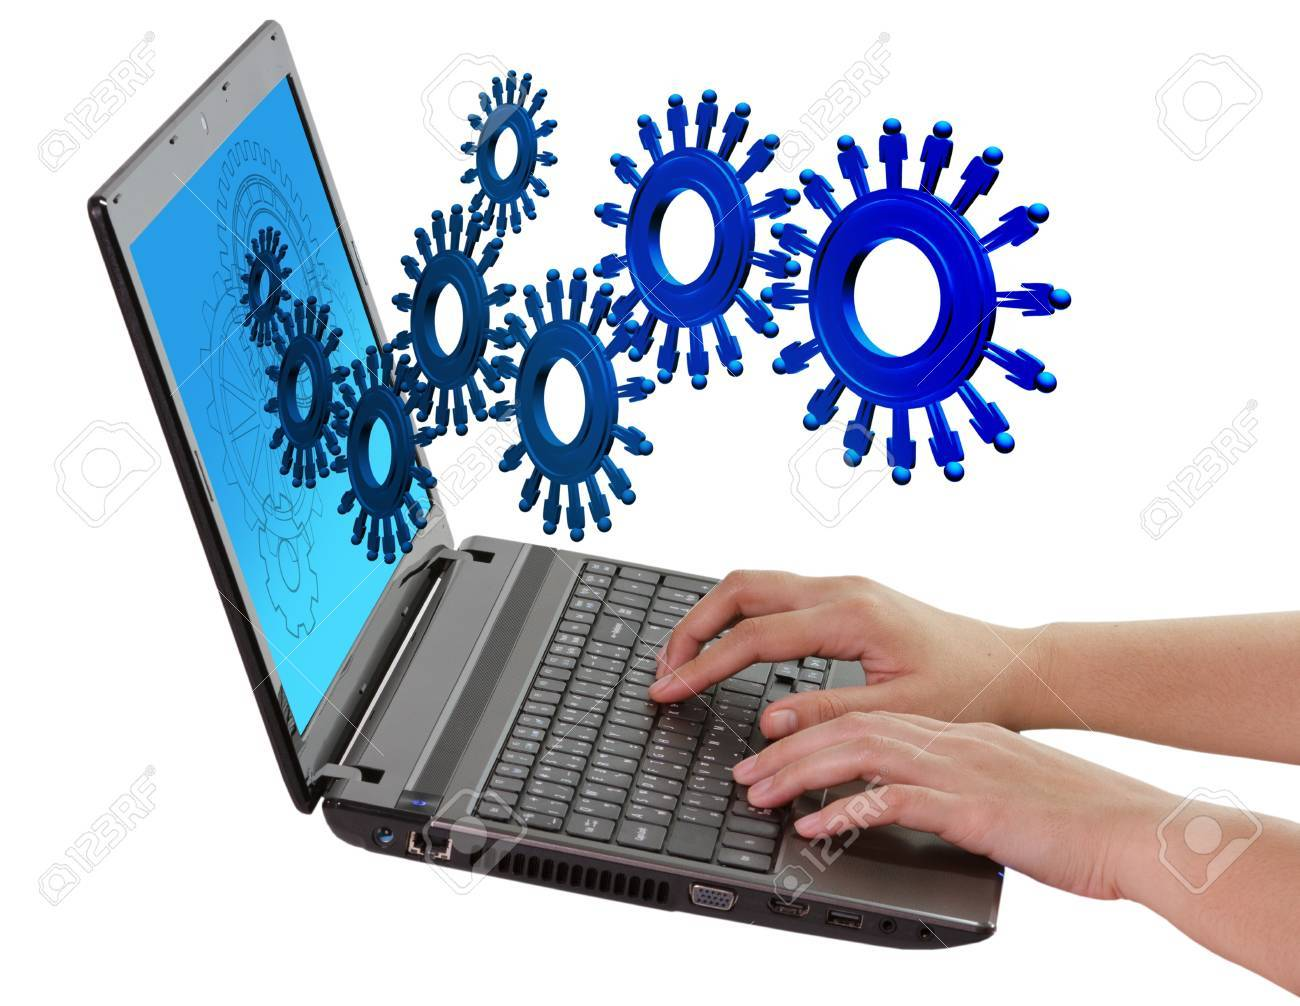 people cogs and gear background Stock Photo - 16083103